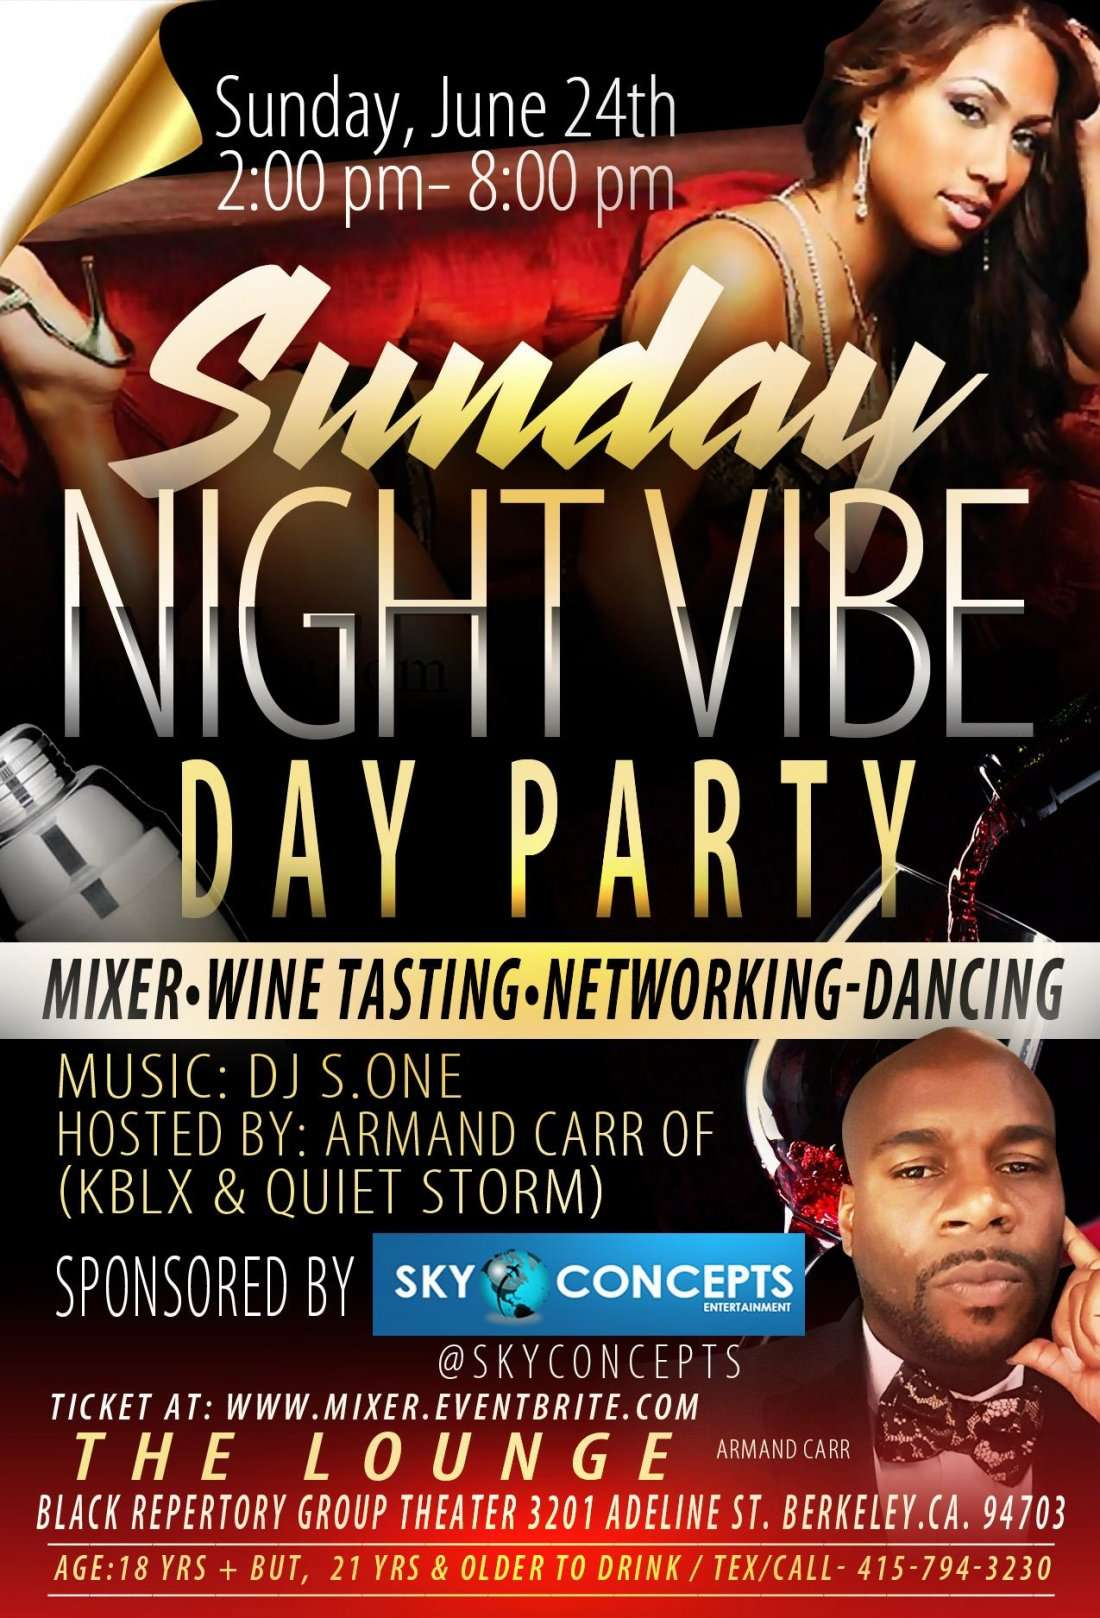 Sunday Day Party Mixer Sunday June 24th